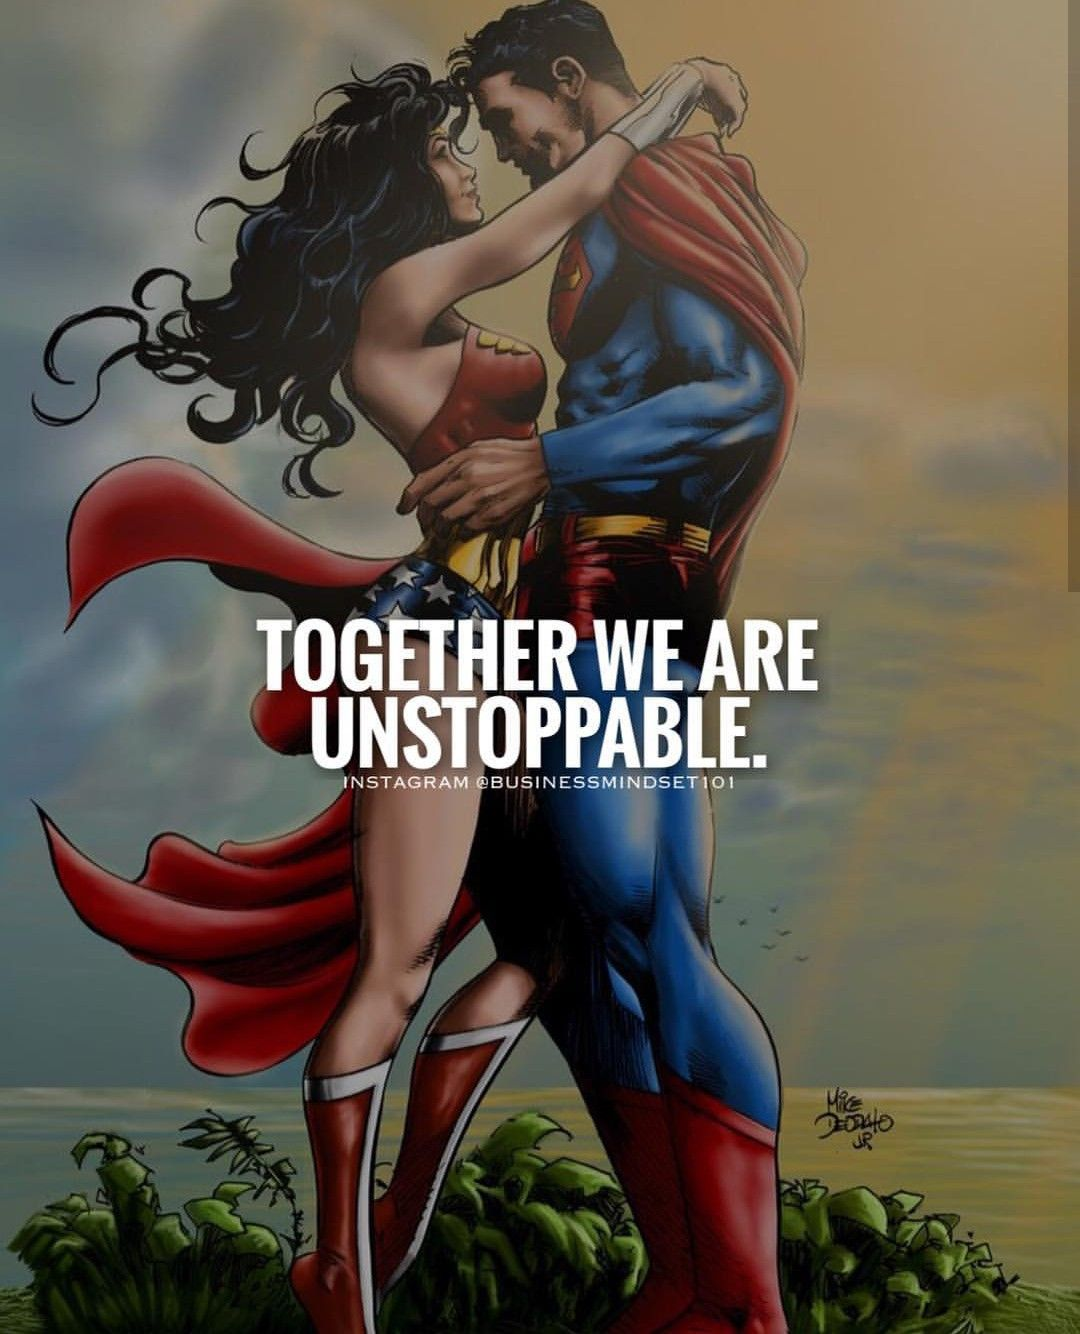 Together We Are Unstoppable Wonder Woman Superman Wonder Woman Instagram